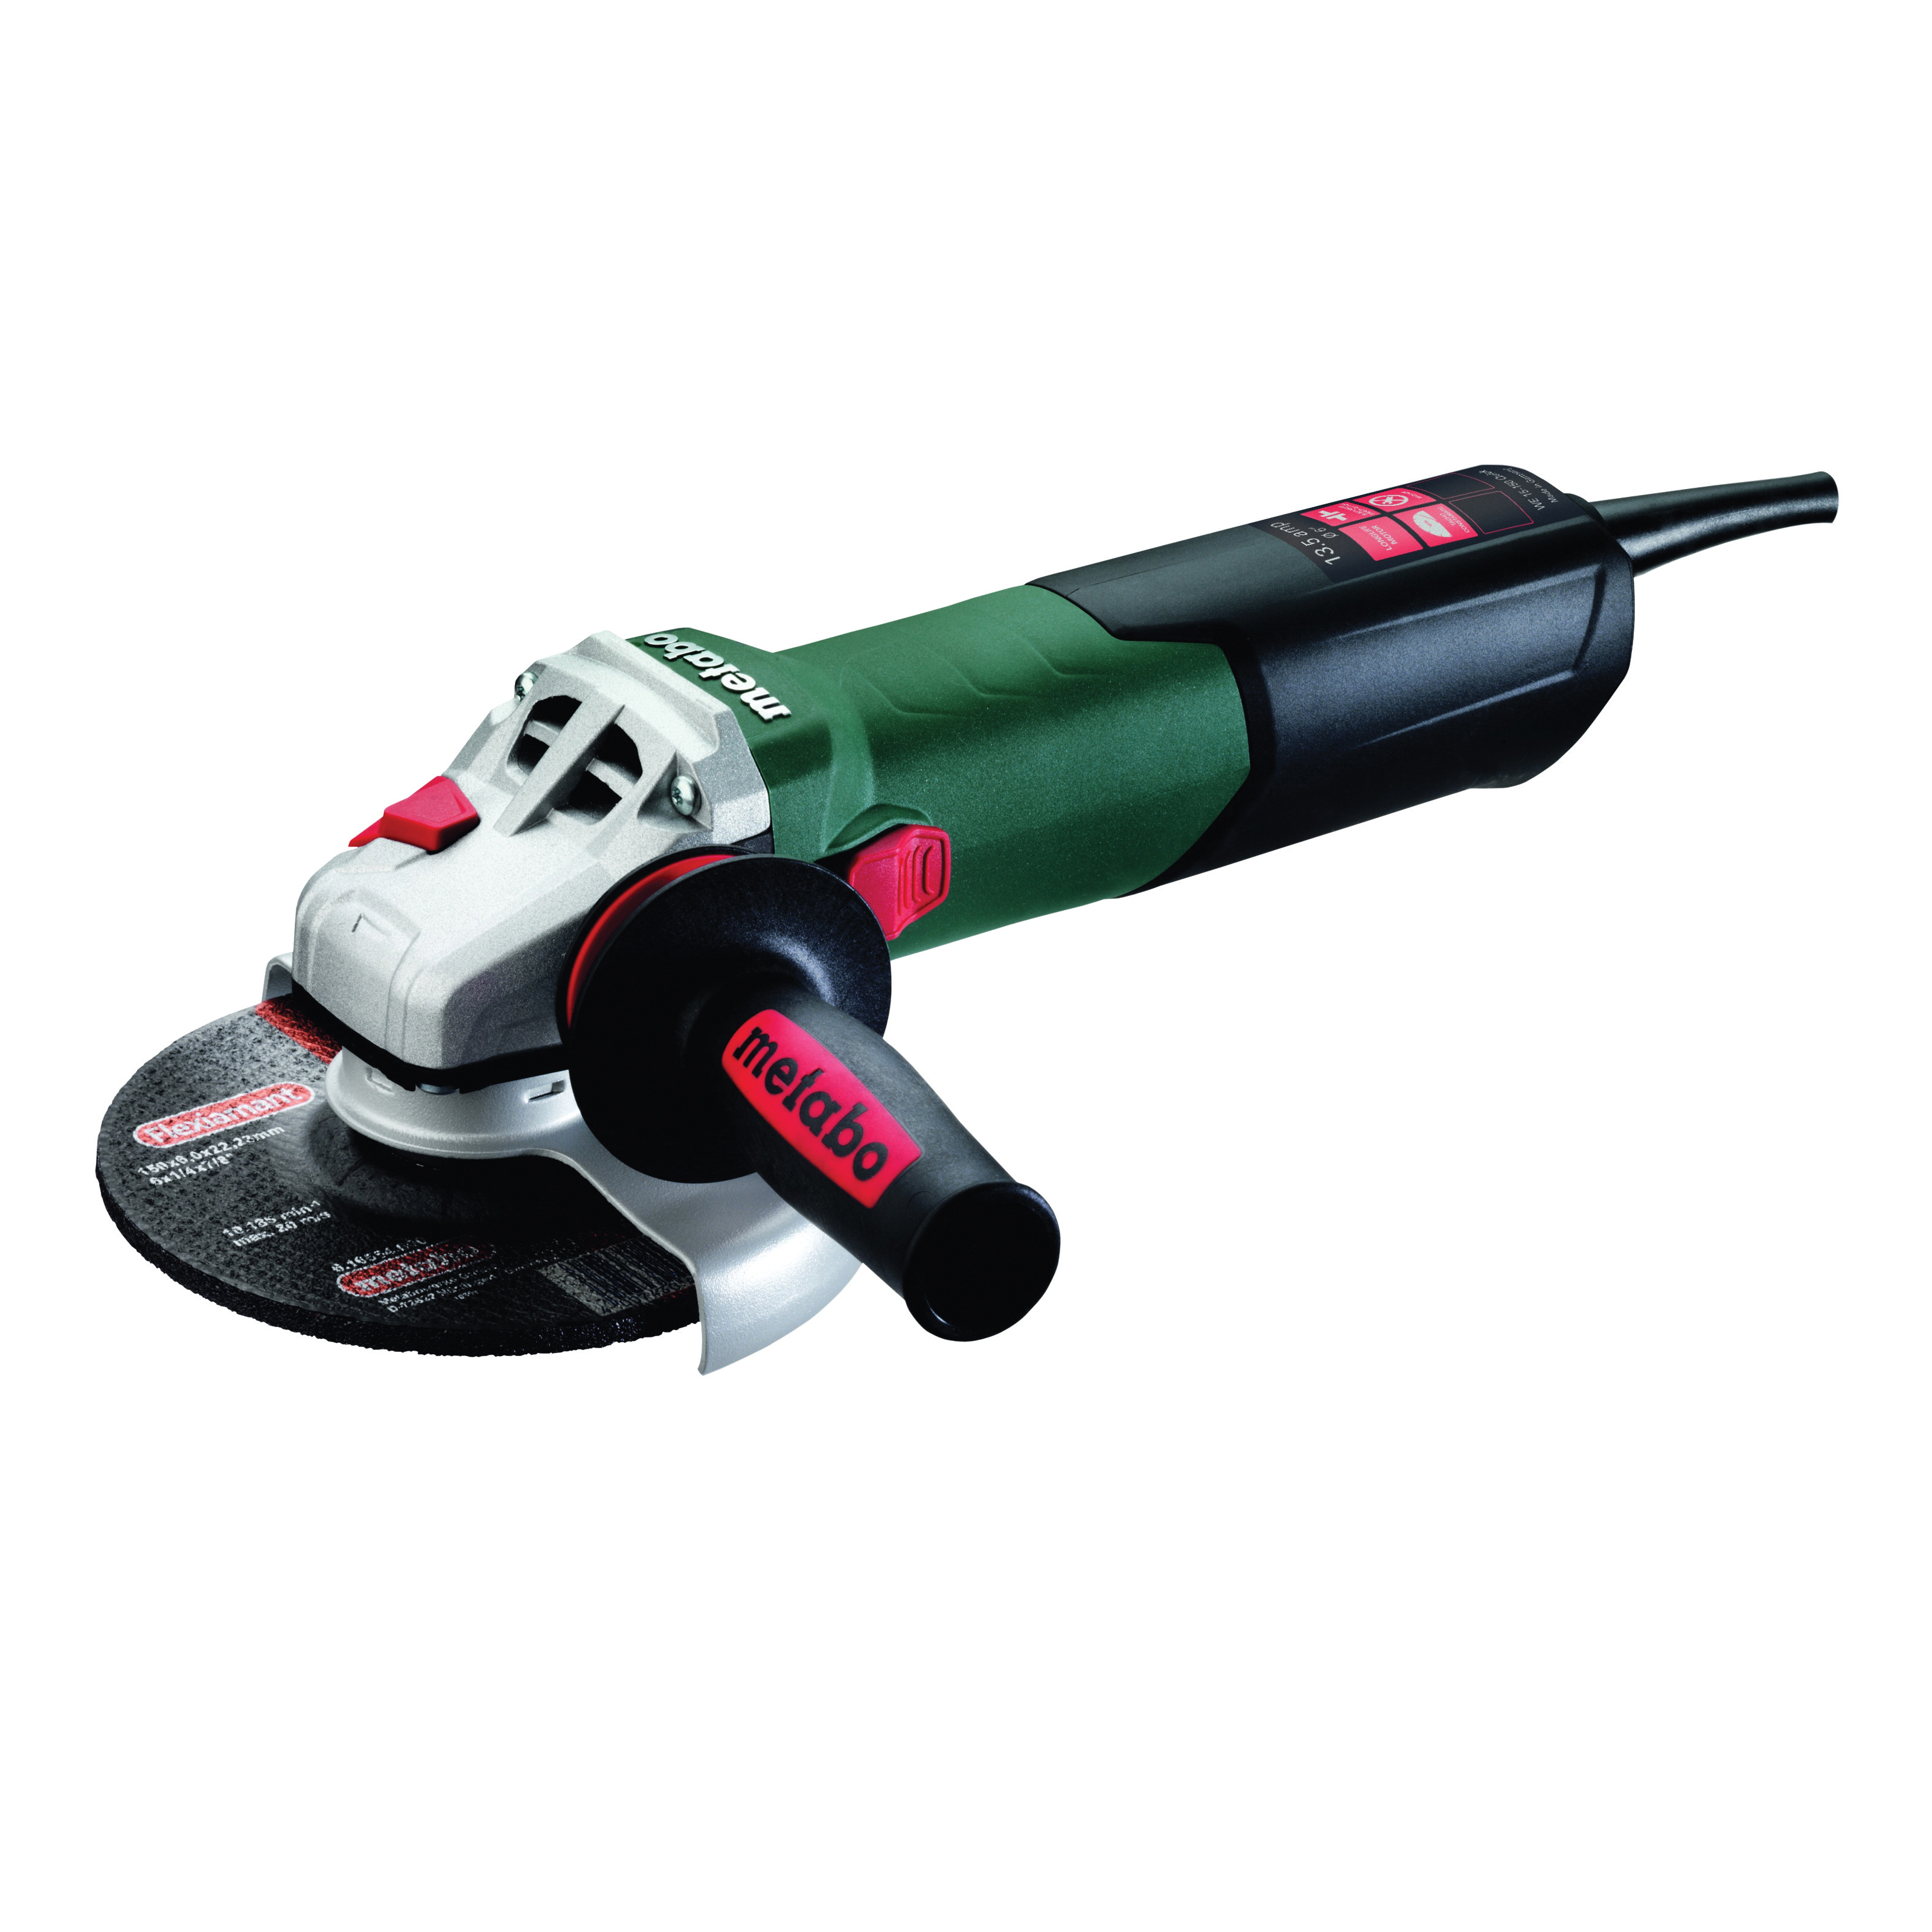 "Metabo WE 15-150 Quick 6"" Angle Grinder"